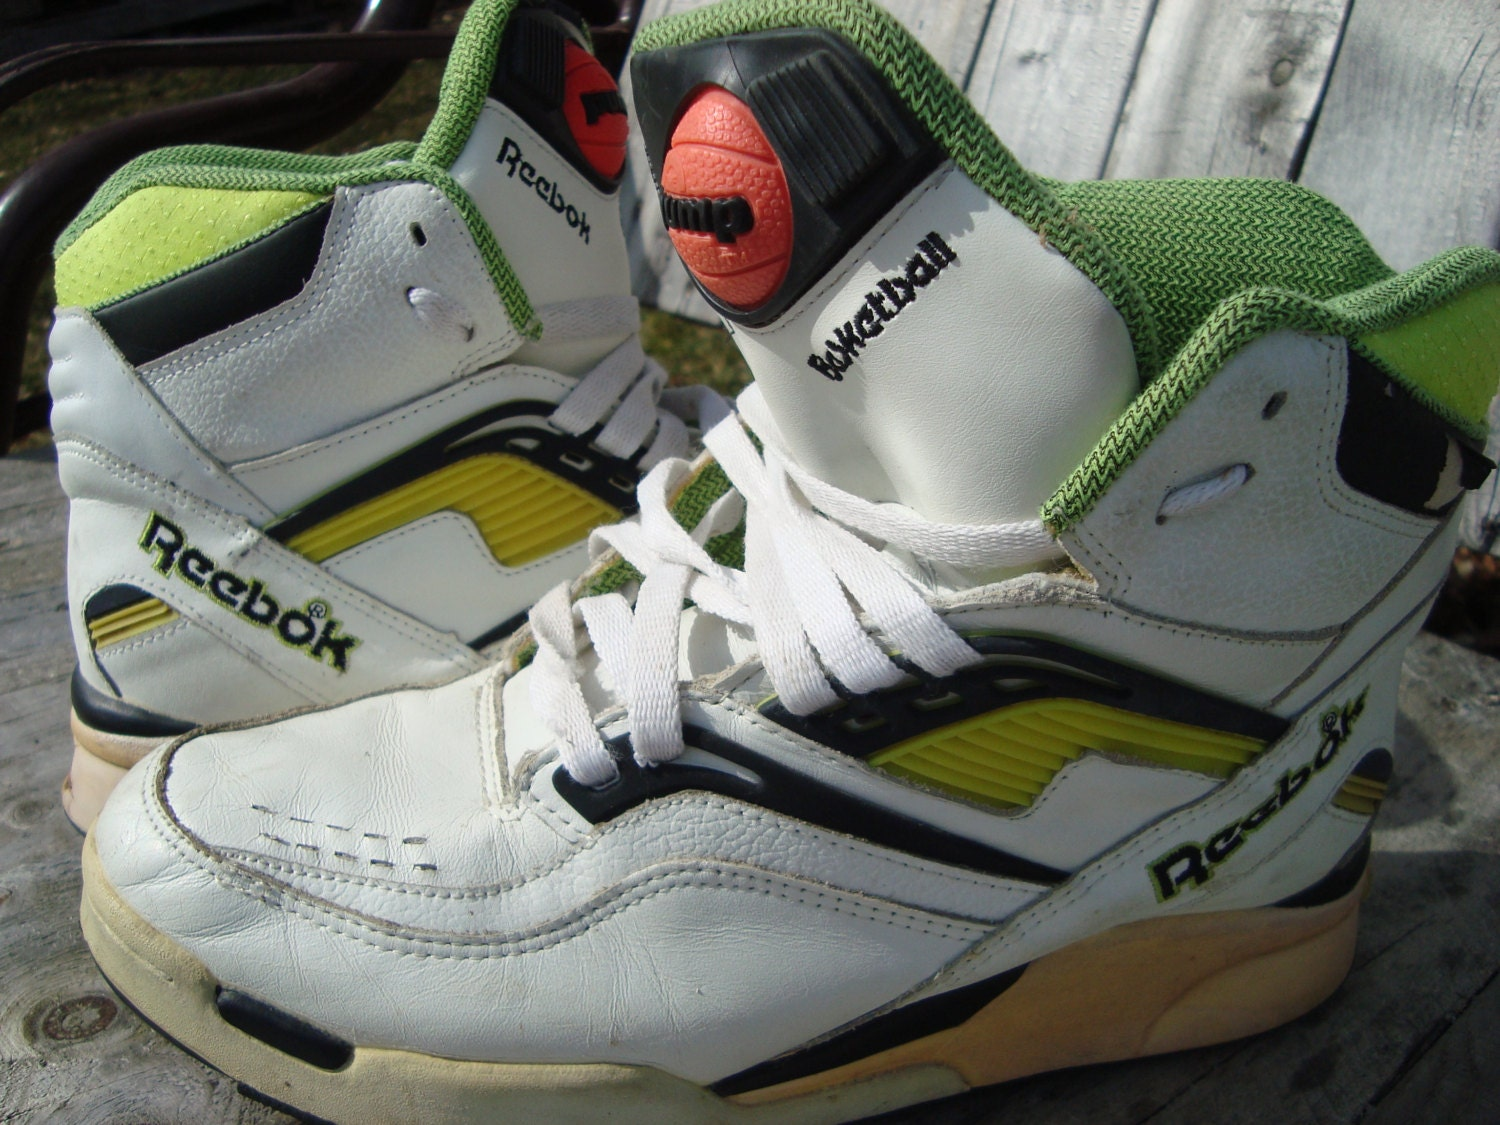 original 90s reebok pumps vintage shoes rare reebok pump. Black Bedroom Furniture Sets. Home Design Ideas